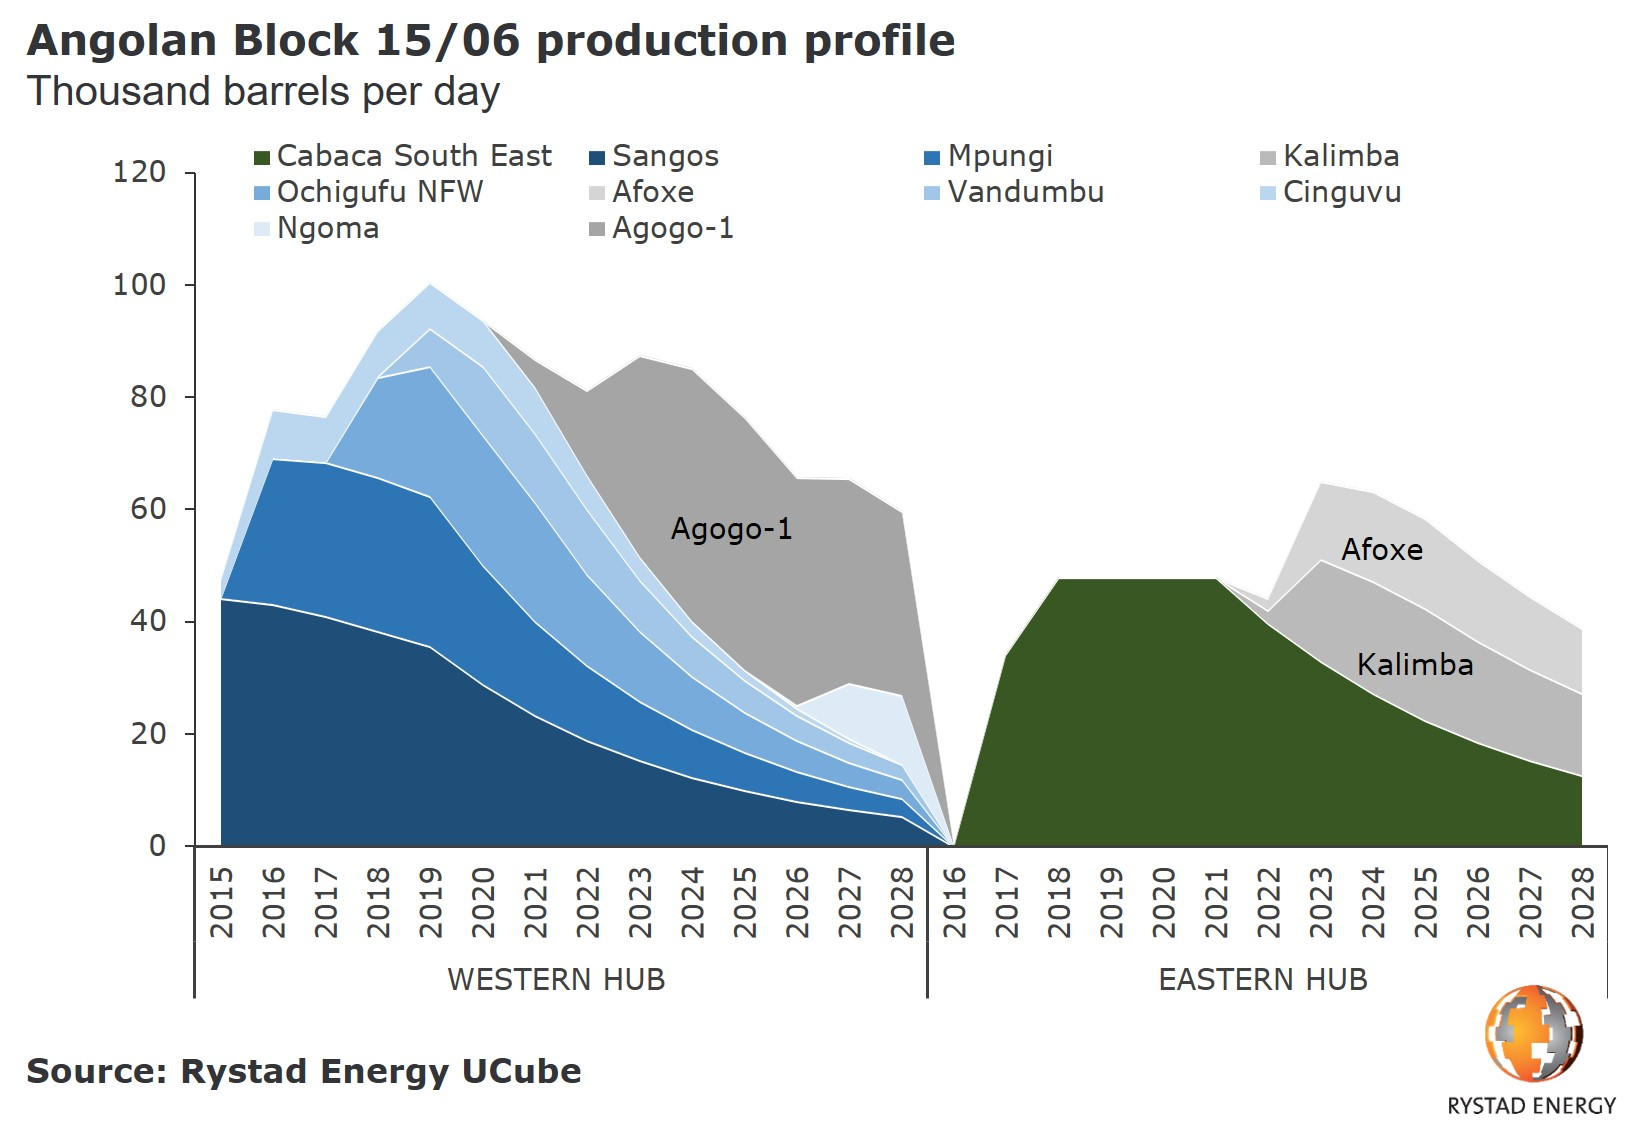 A graph showing the Angolan Block 15/06 production profile in thousand barrels per day from 2015 to 2028. Source: Rystad Energy UCube